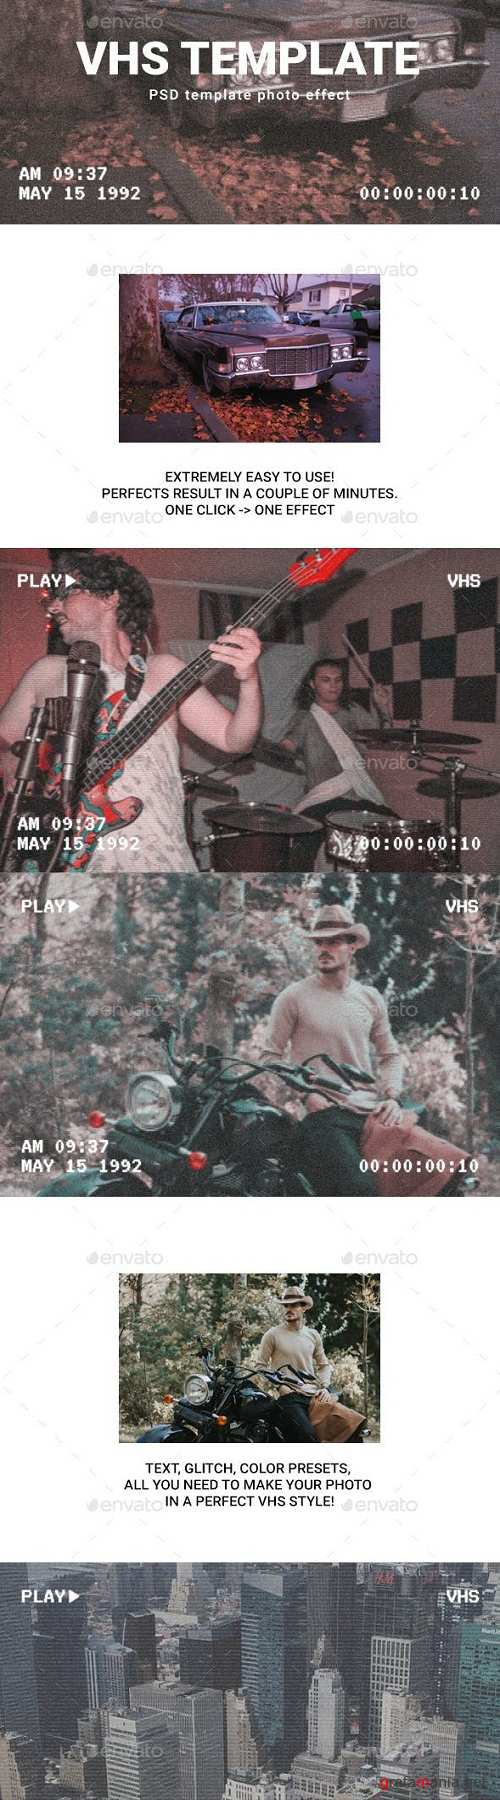 Vhs photo template 23025784